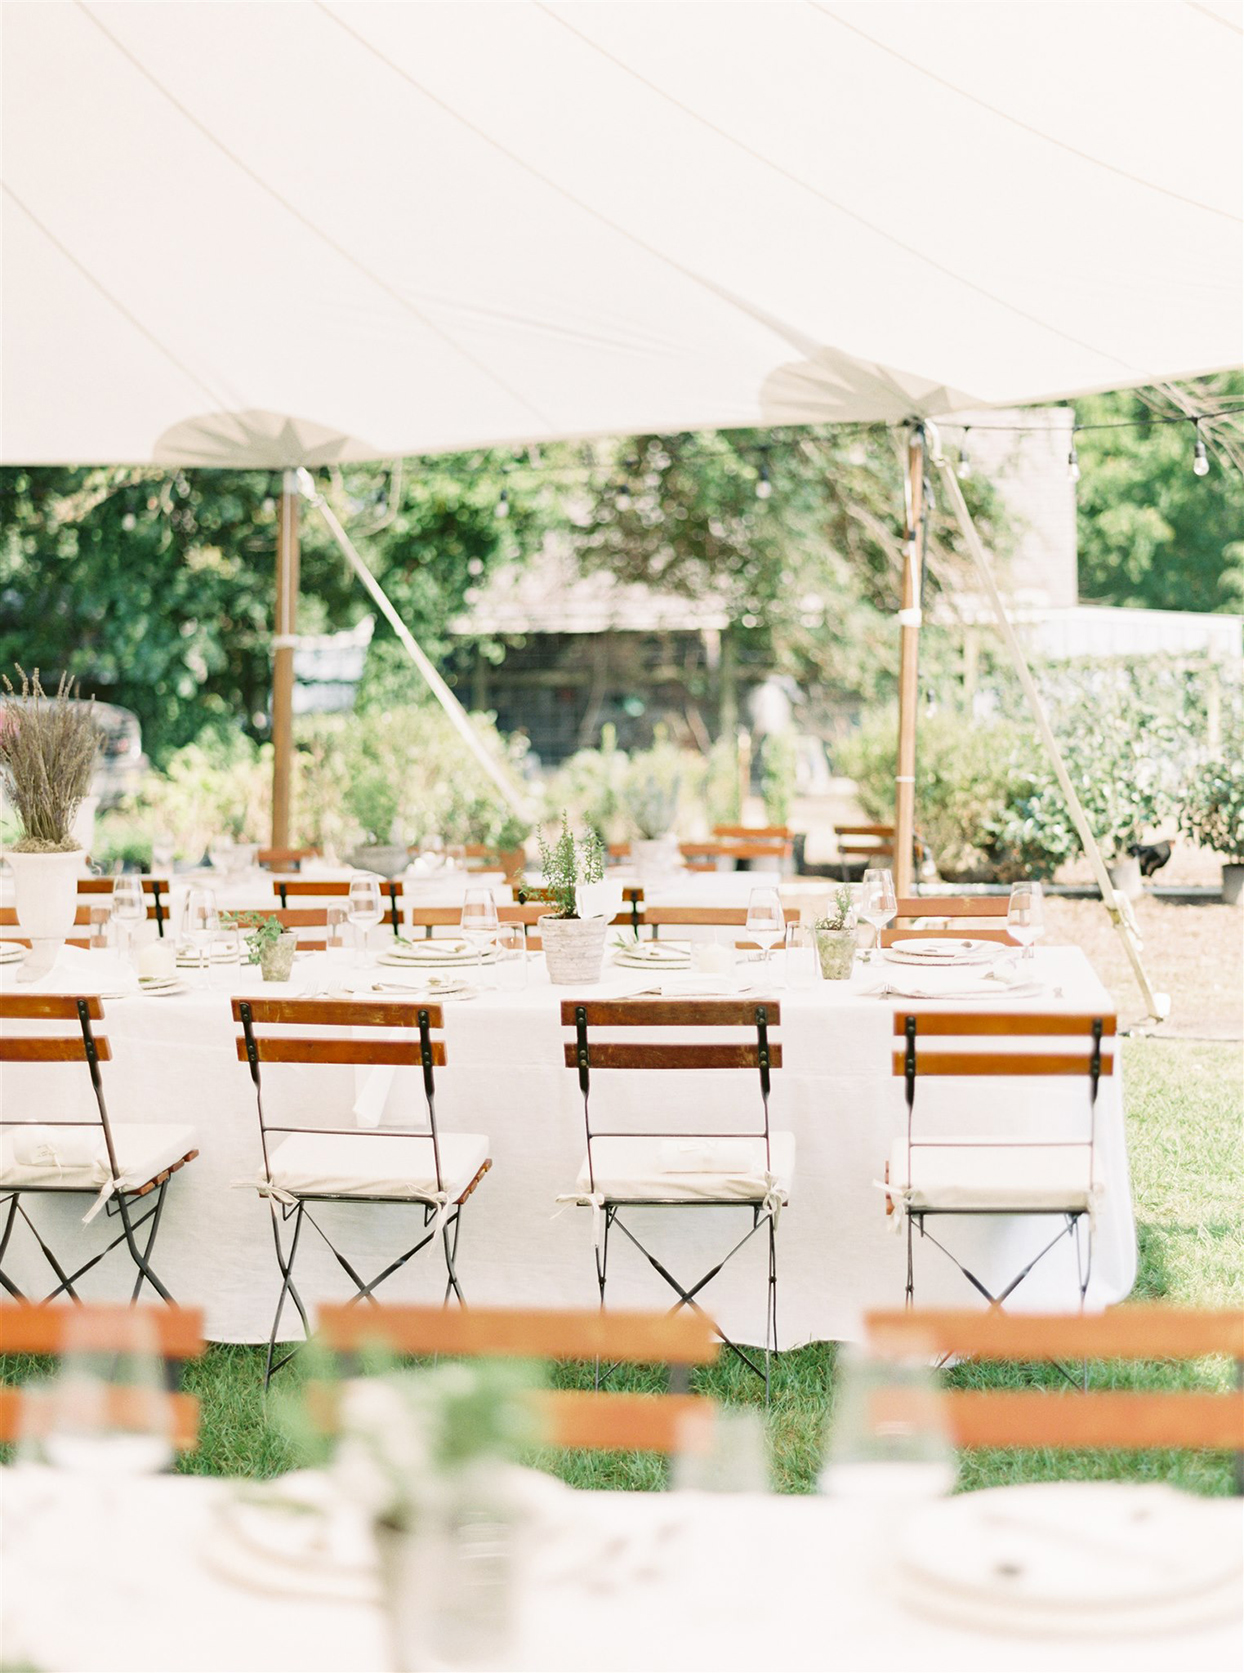 samantha cody wedding white reception tables with earthy decor in tent